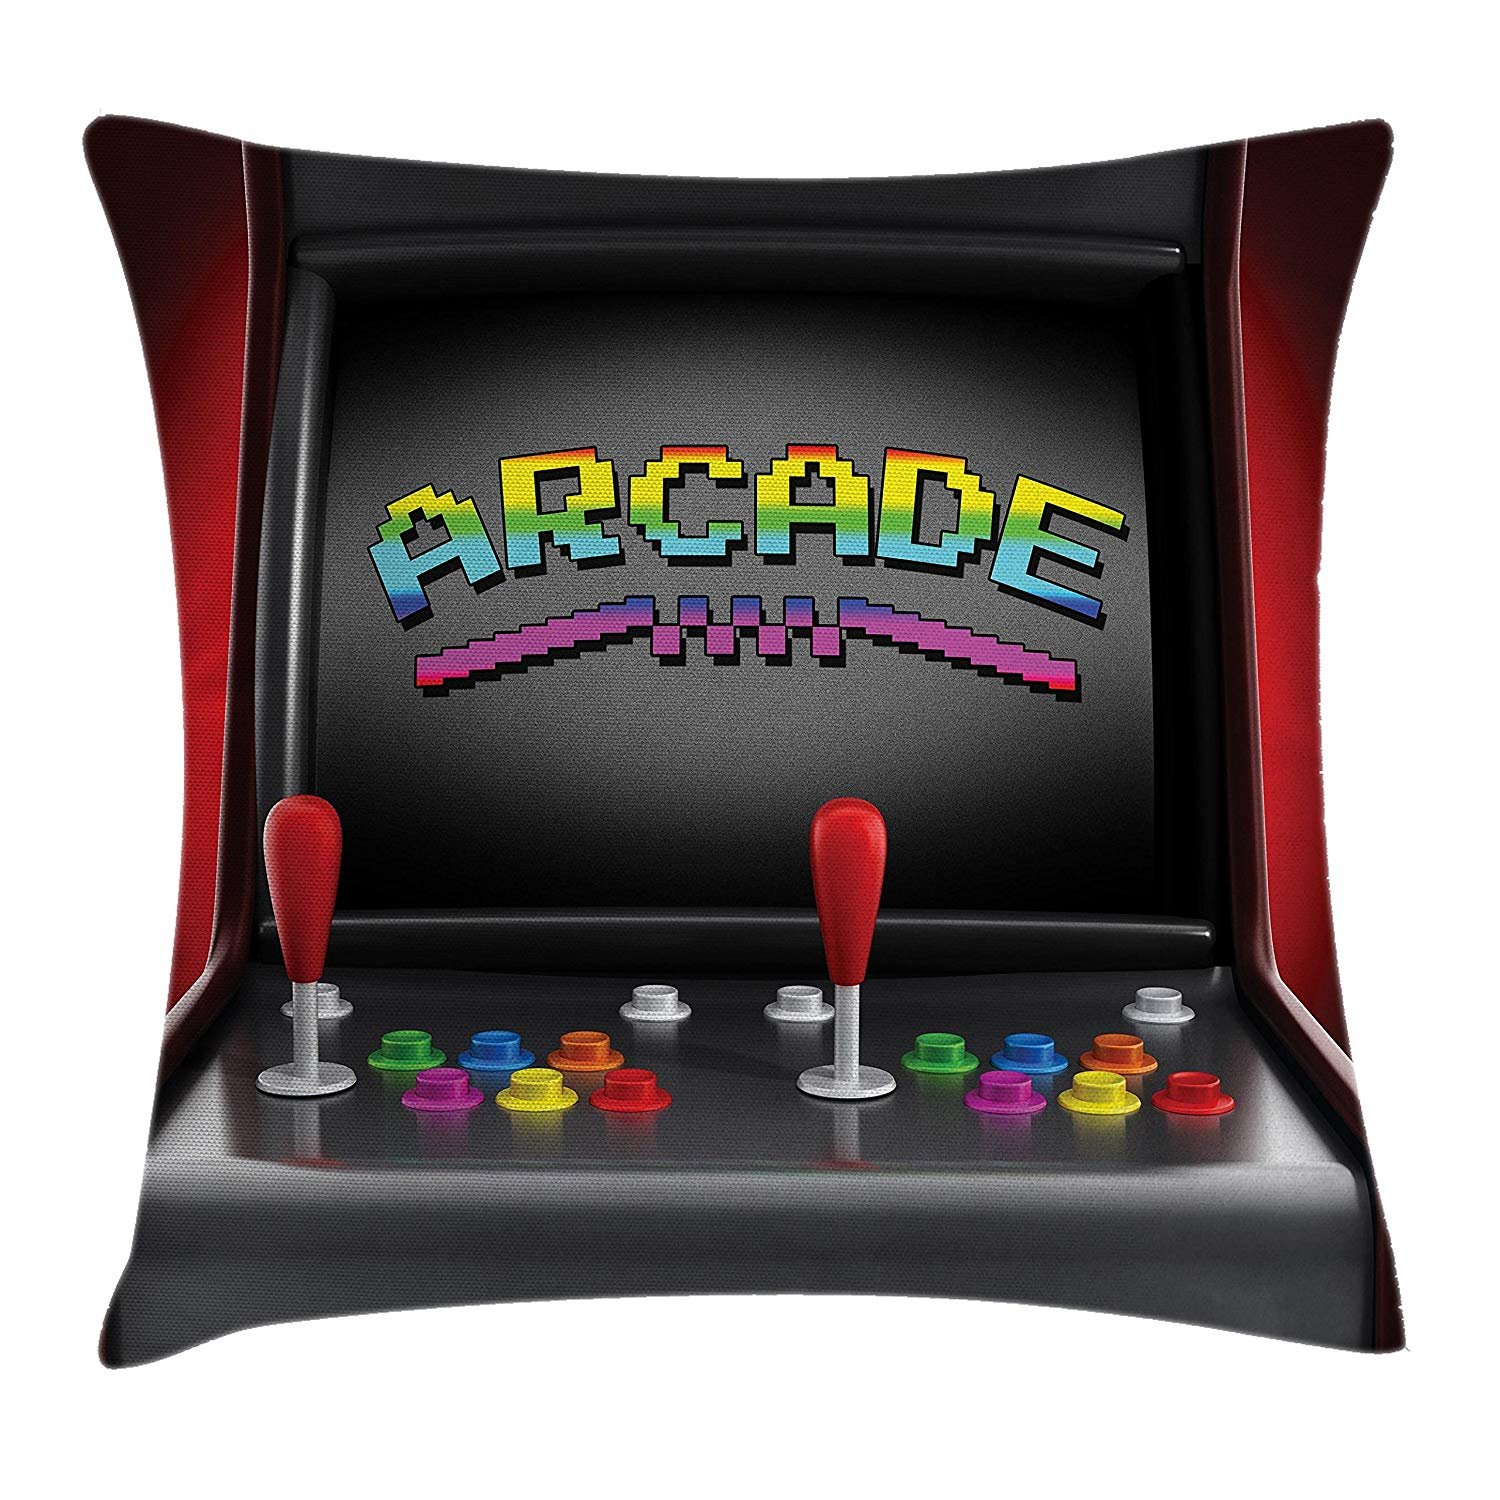 Video Games Throw Pillow Cushion Cover Arcade Machine Retro Gaming Fun Joystick Buttons Vintage 80's 90's Electronic, Decorative Square Accent Pillow Case, 18 X 18 Inches, Multicolor shower&home